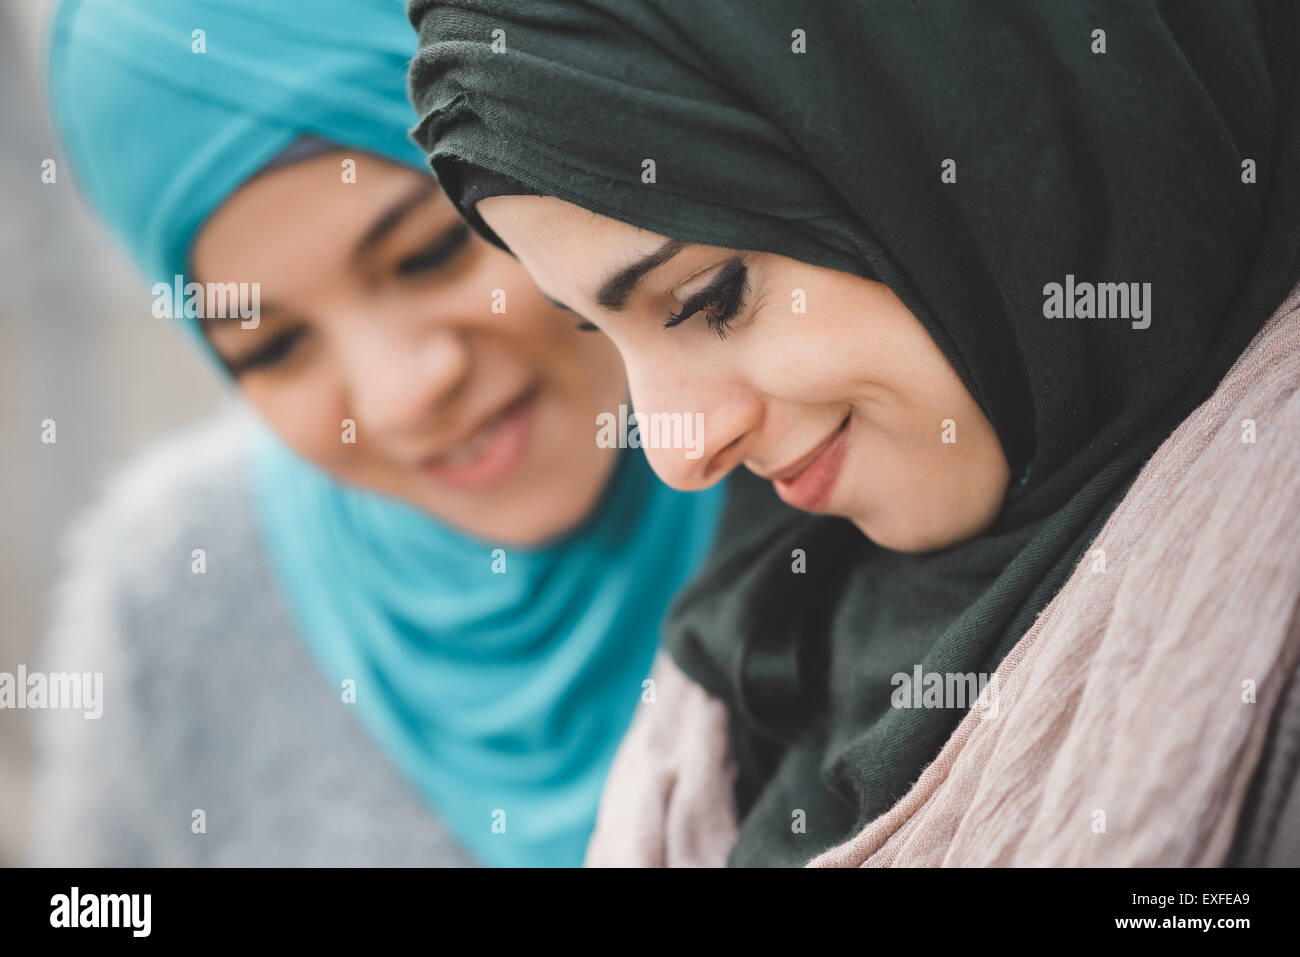 Close up of two young women wearing hijabs - Stock Image